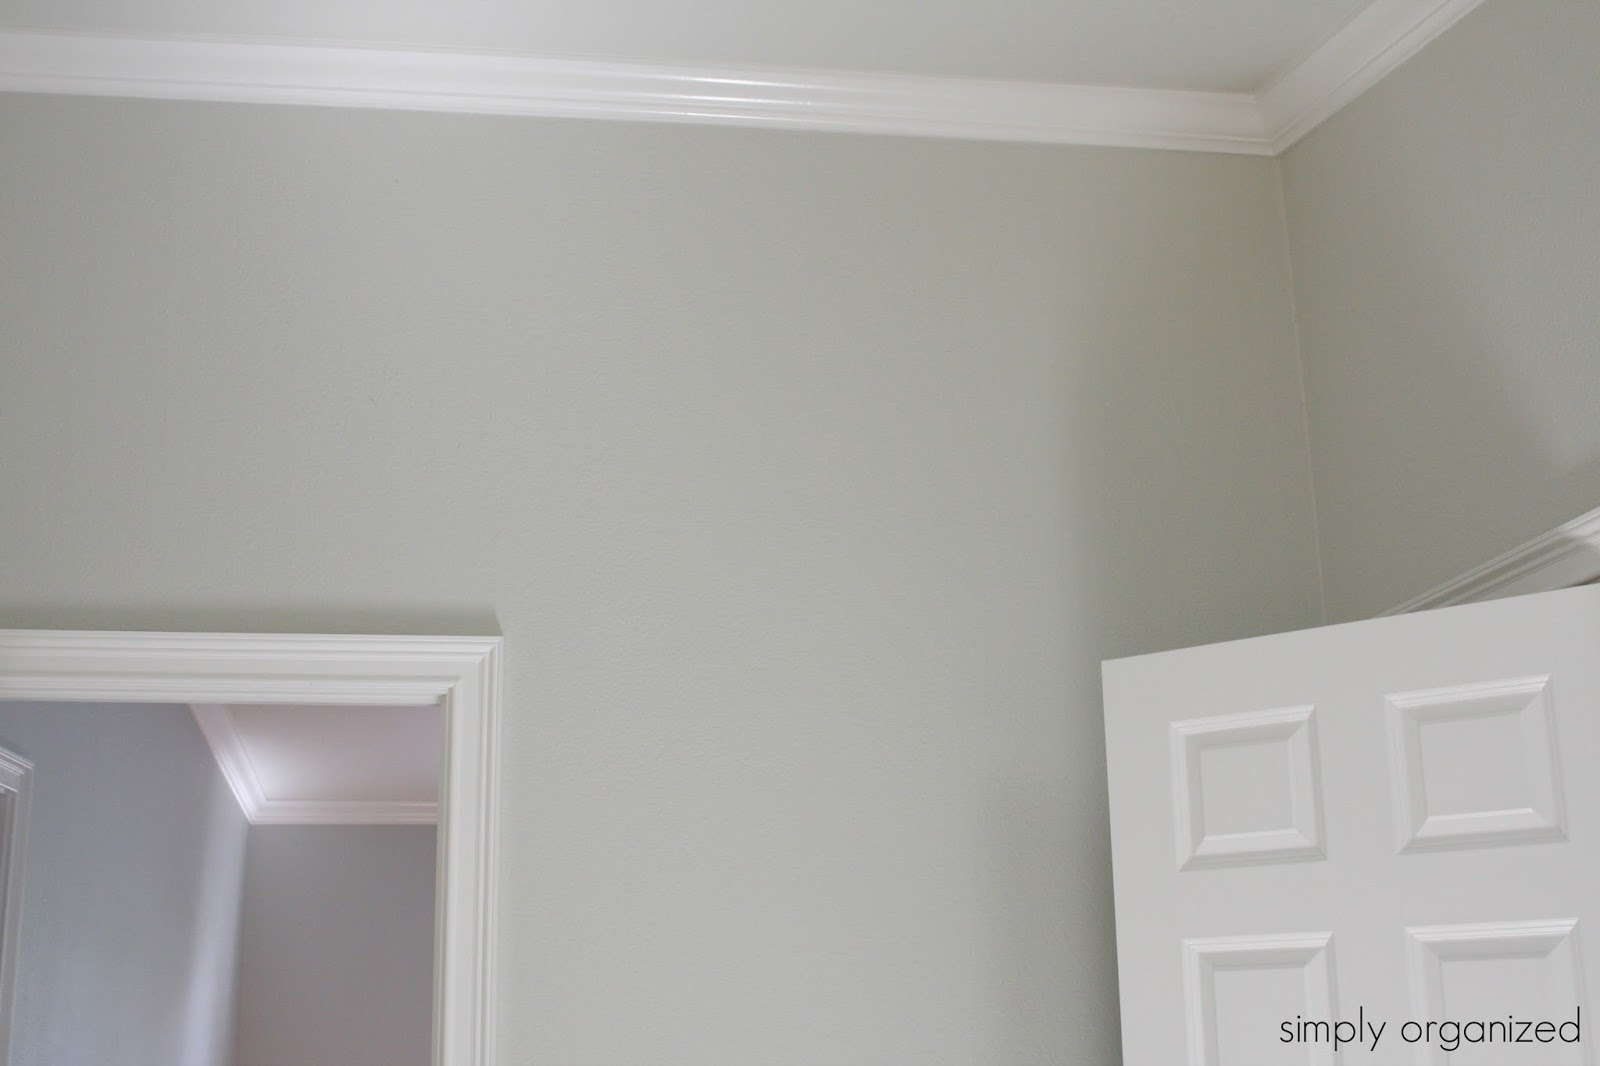 simply organized: my home interior paint color palate